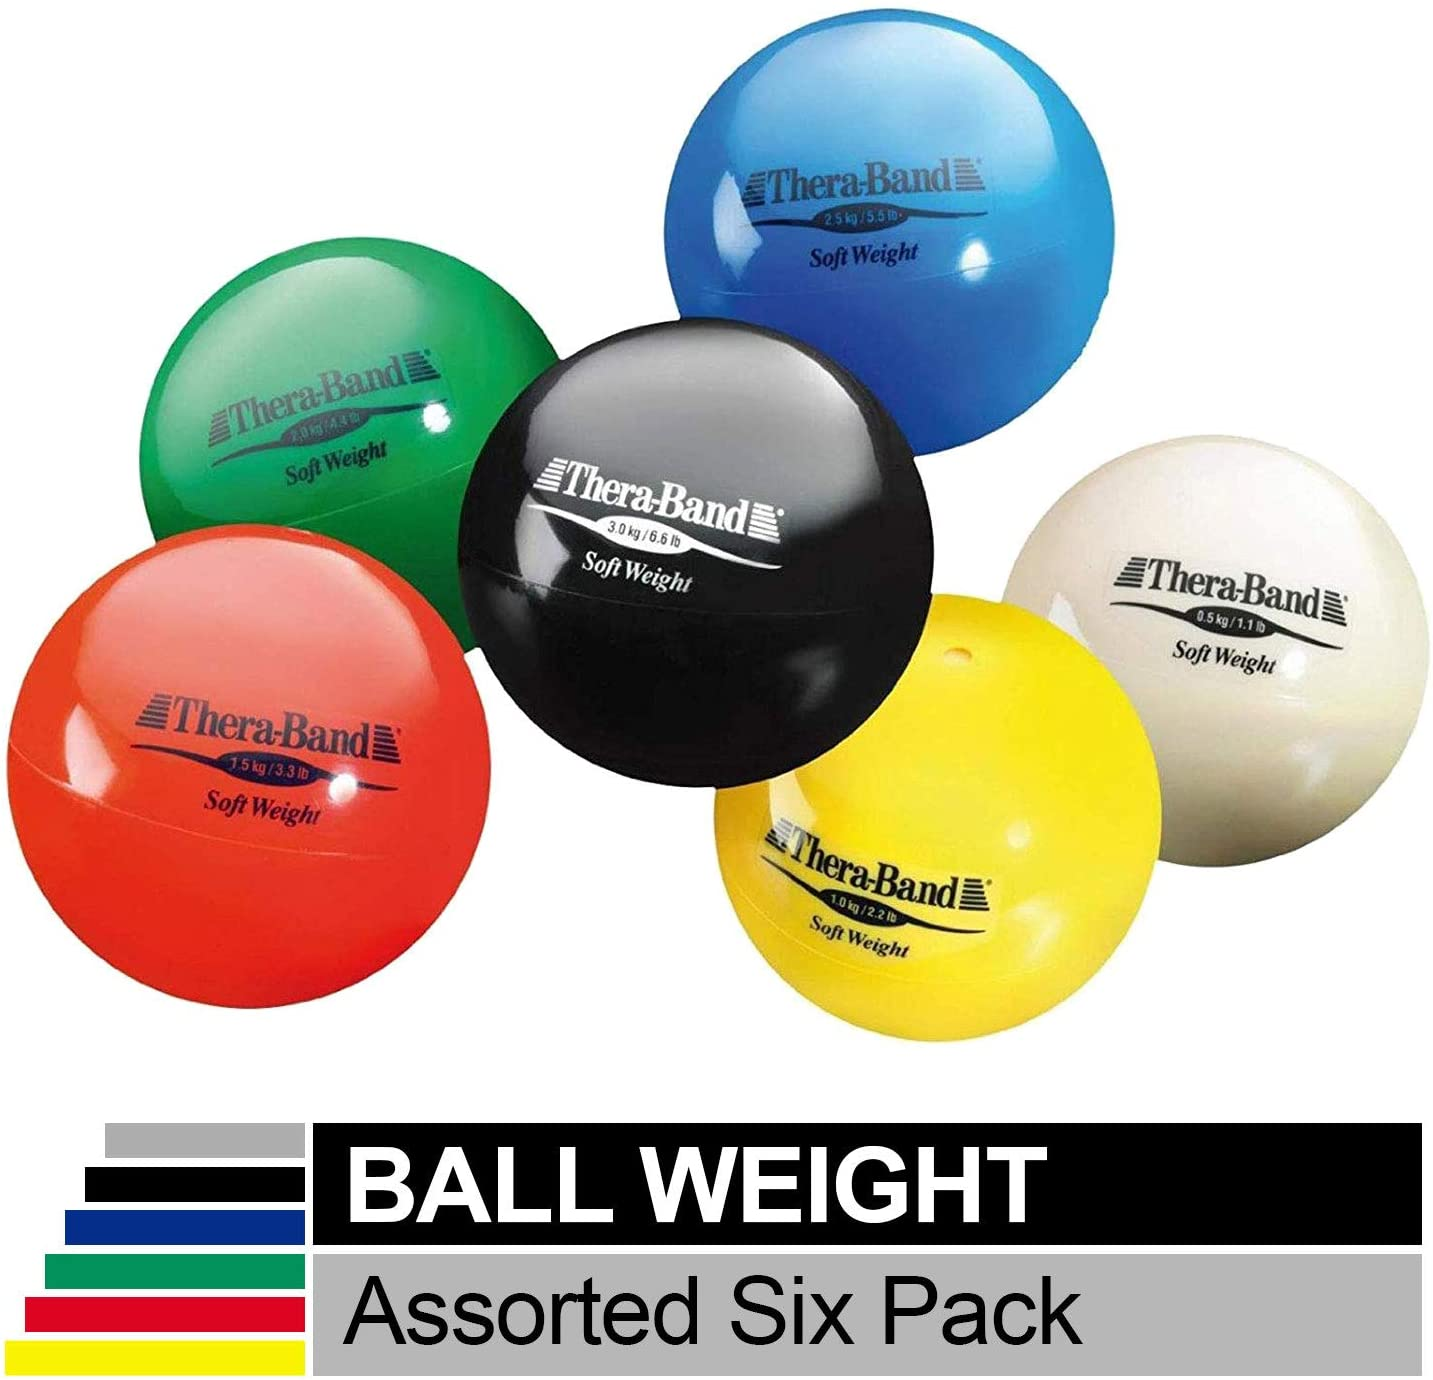 Strength Training and Rehab Exercises 4.5 Diameter Hand Held Ball Shaped Isotonic Weighted Ball for Isometric Workouts Shoulder Strengthening and Surgery Rehabilitation TheraBand Soft Weight